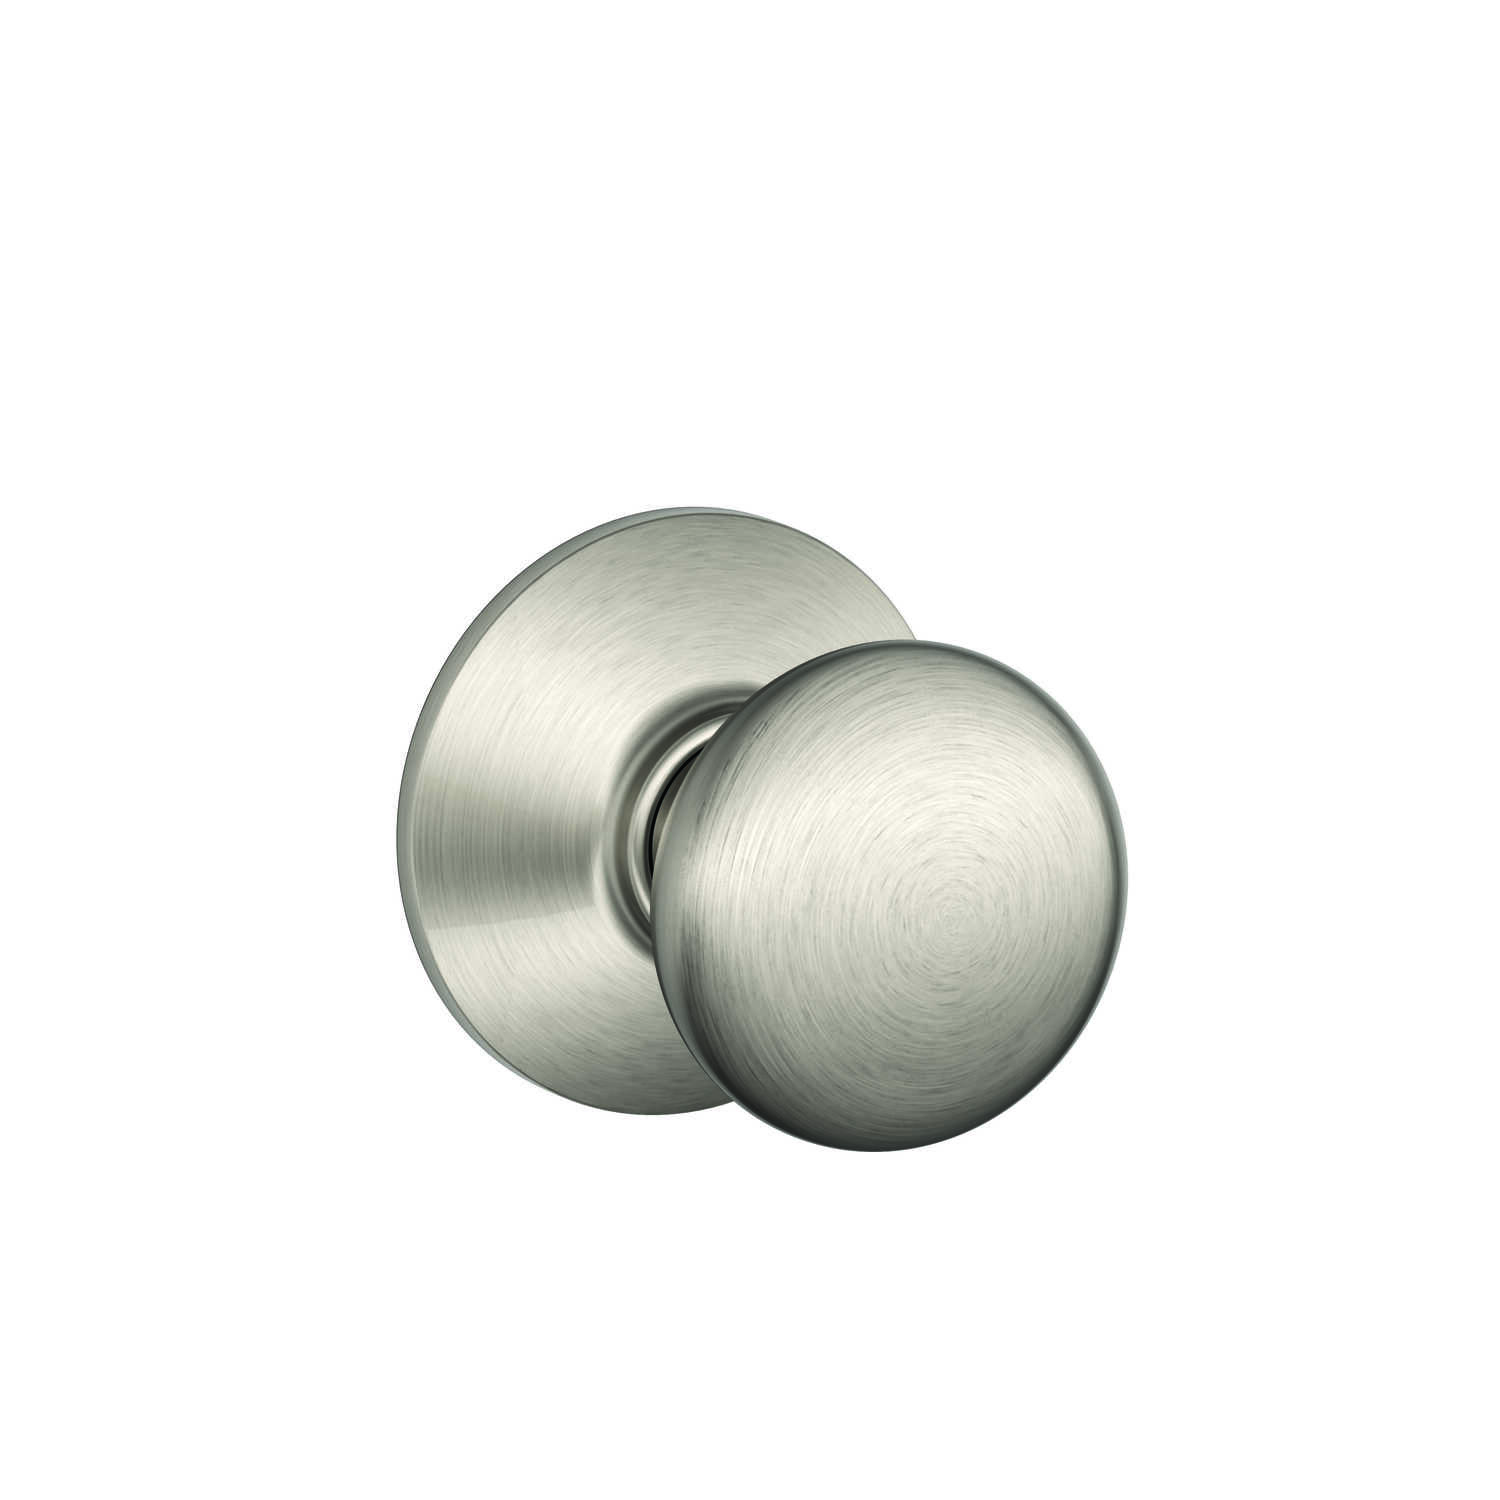 Schlage  Plymouth  Satin Nickel  Brass  Passage Door Knob  2  Right or Left Handed